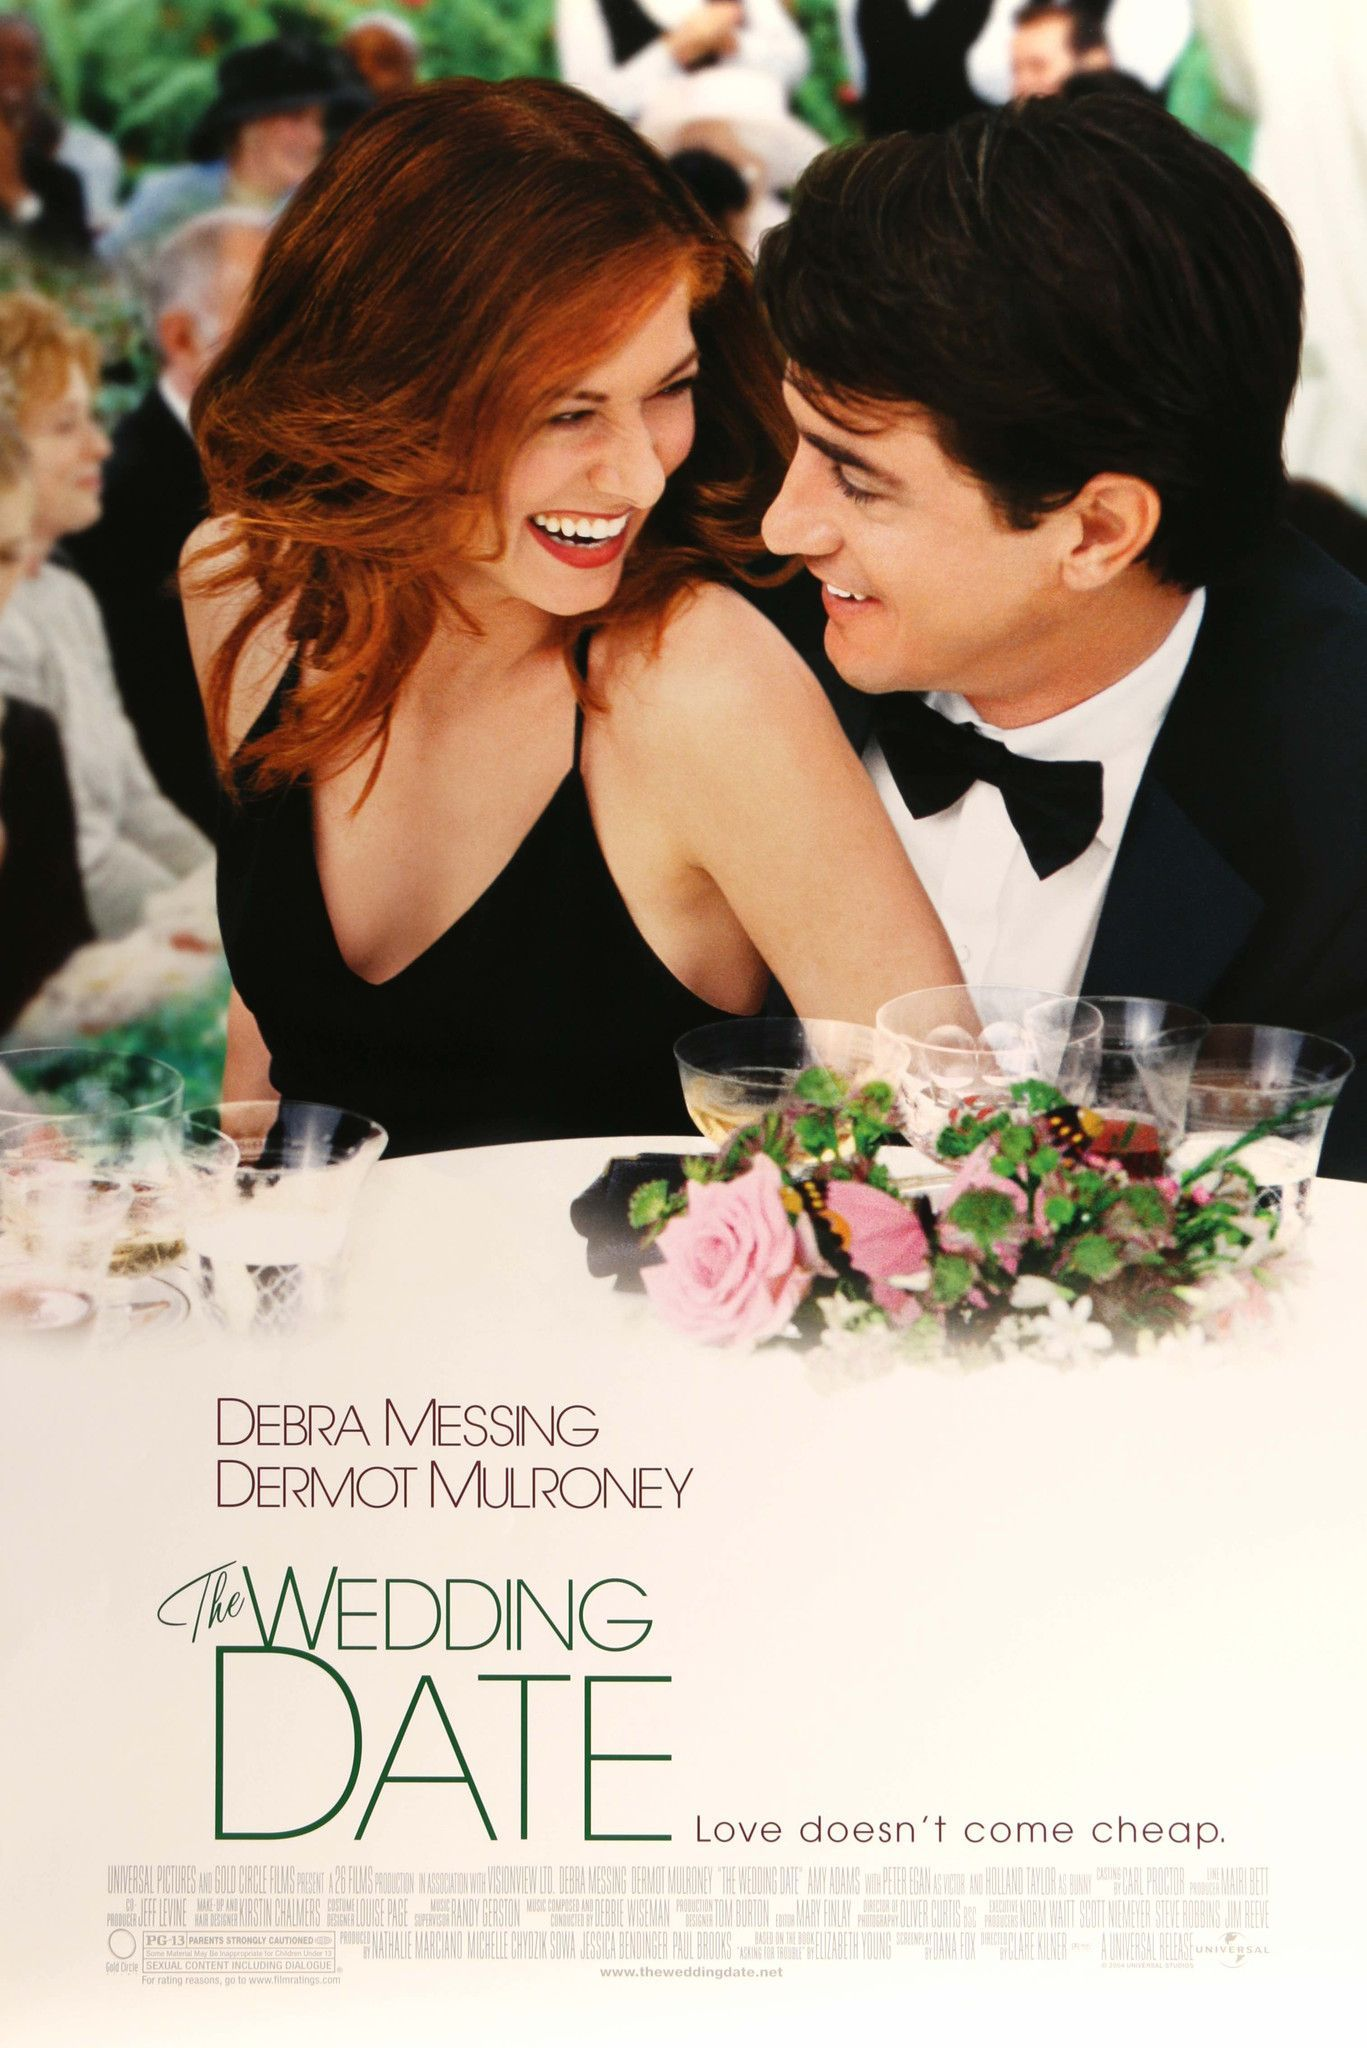 Wedding Date 2005 Wedding Movies The Wedding Date Full Movies Online Free